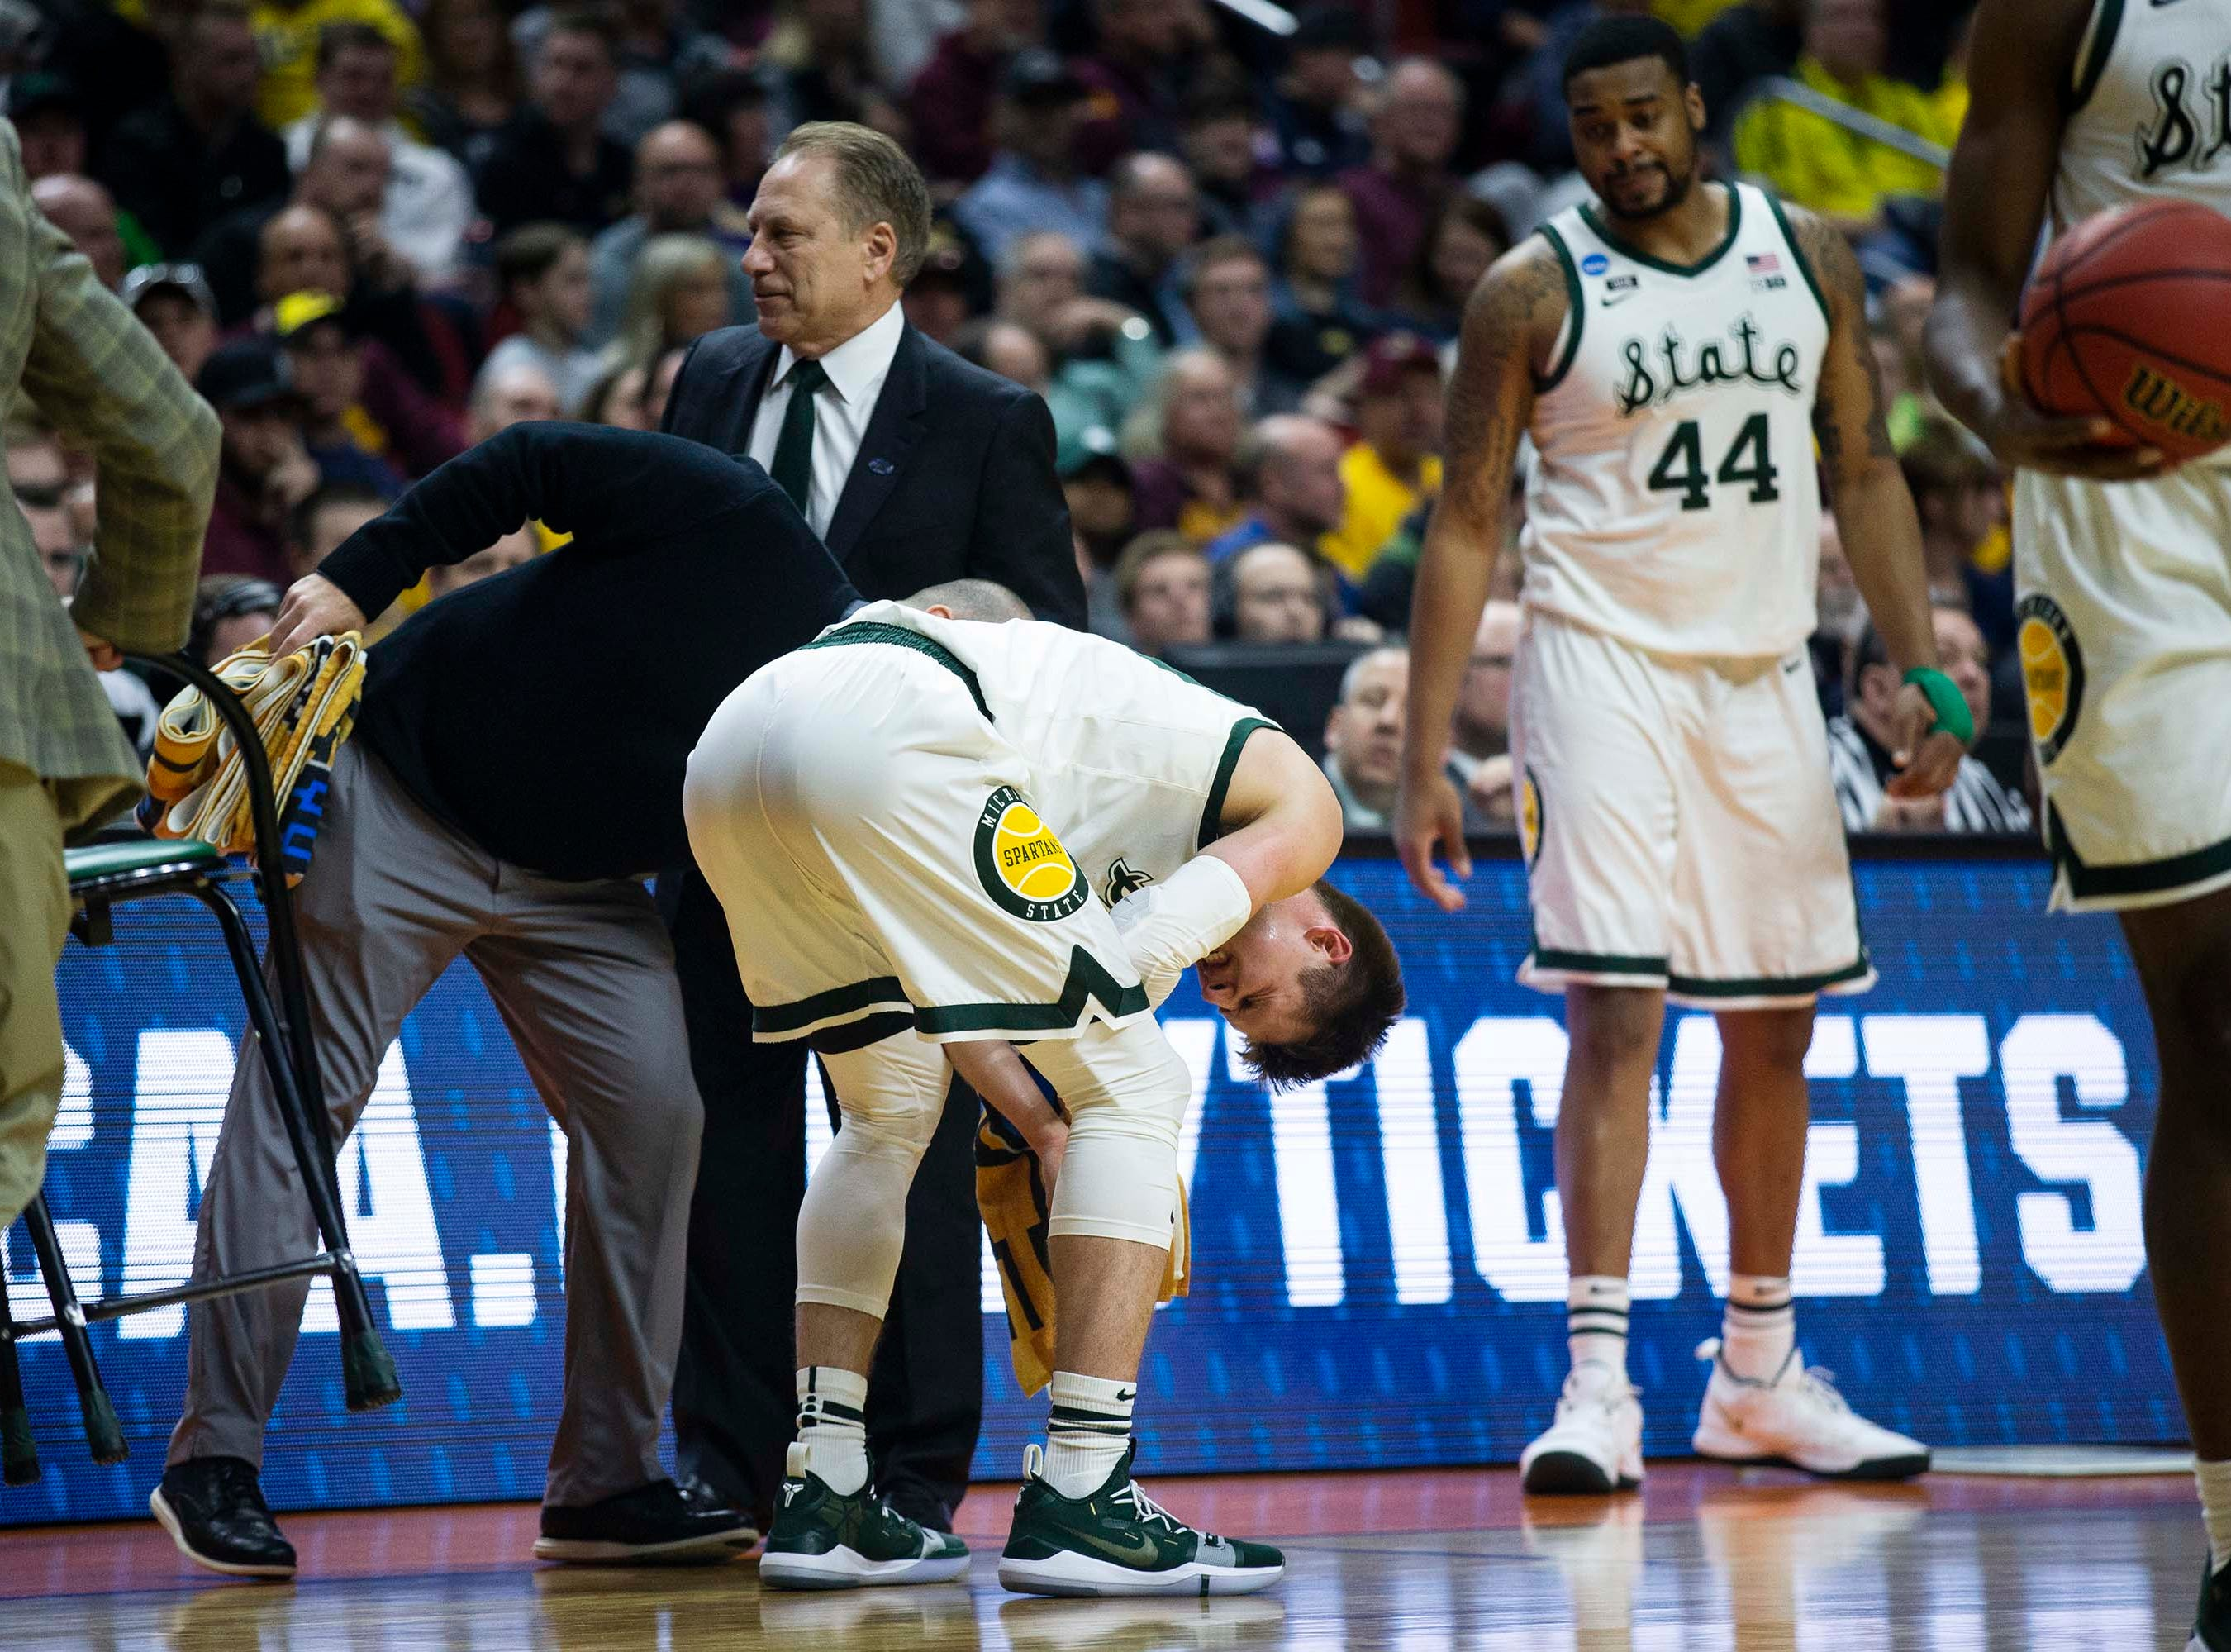 Michigan State's Matt McQuaid reacts to an injury during the NCAA Tournament second-round match-up between Minnesota and Michigan State on Saturday, March 23, 2019, in Wells Fargo Arena in Des Moines, Iowa.